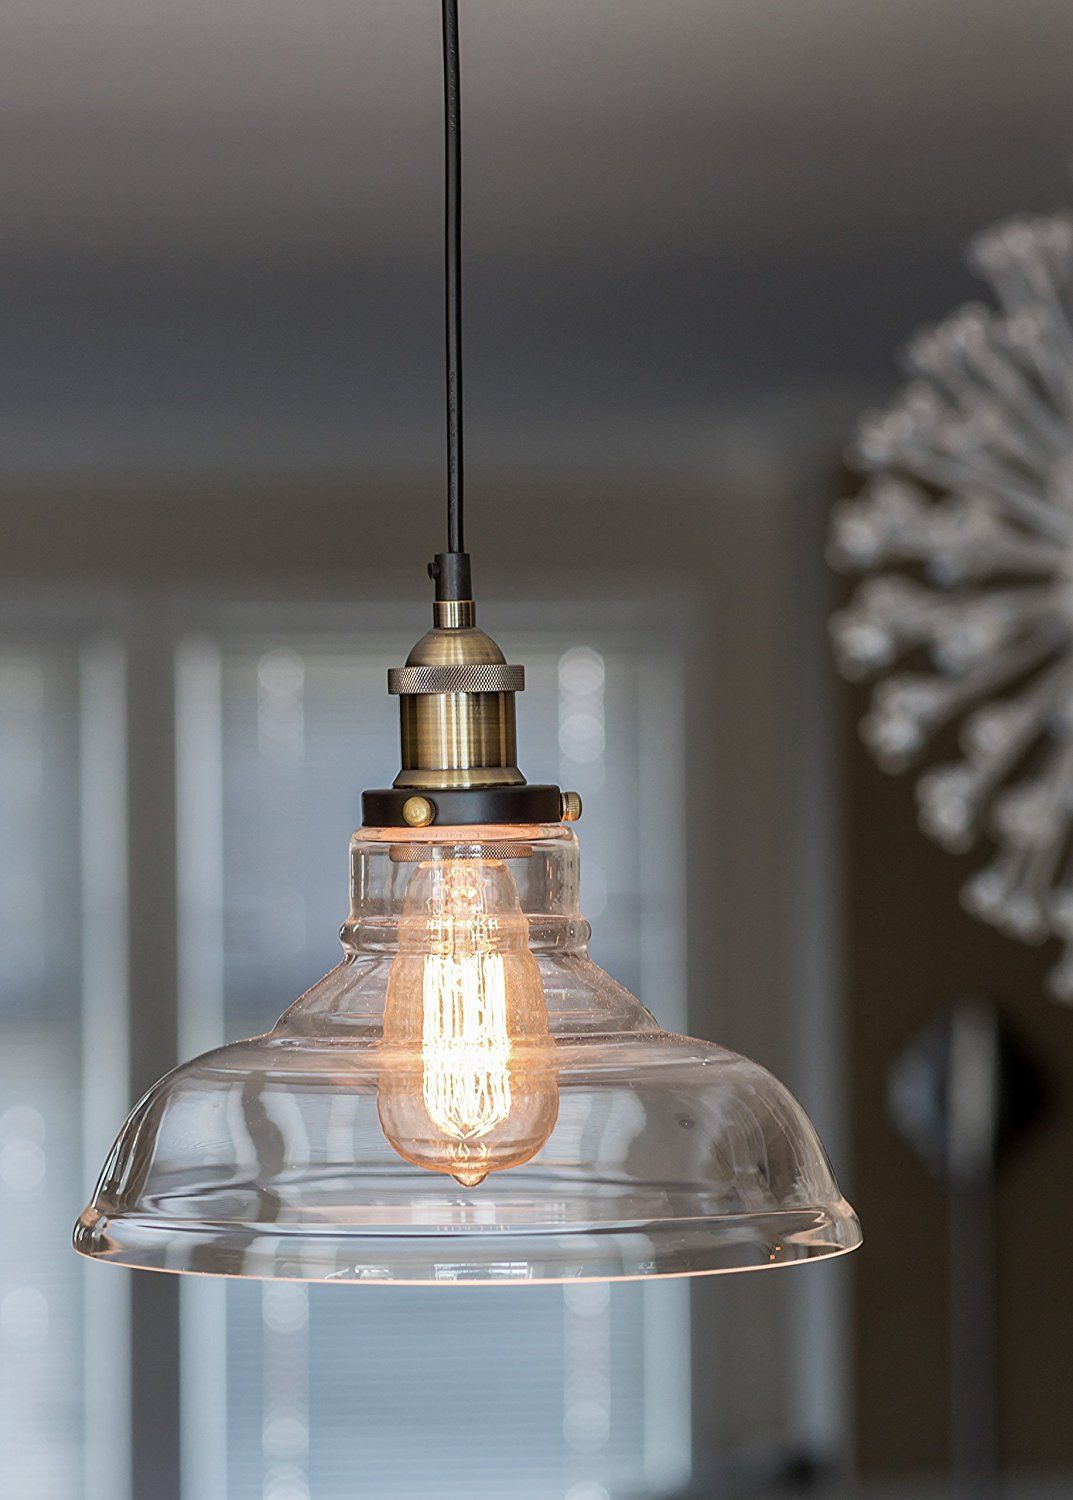 Glass pendant light the loft with vintage edison light bulb 7 glass pendant light the loft with vintage edison light bulb 7 value gorgeous vintage light fixture single bulb chandelier lighting industrial arubaitofo Image collections